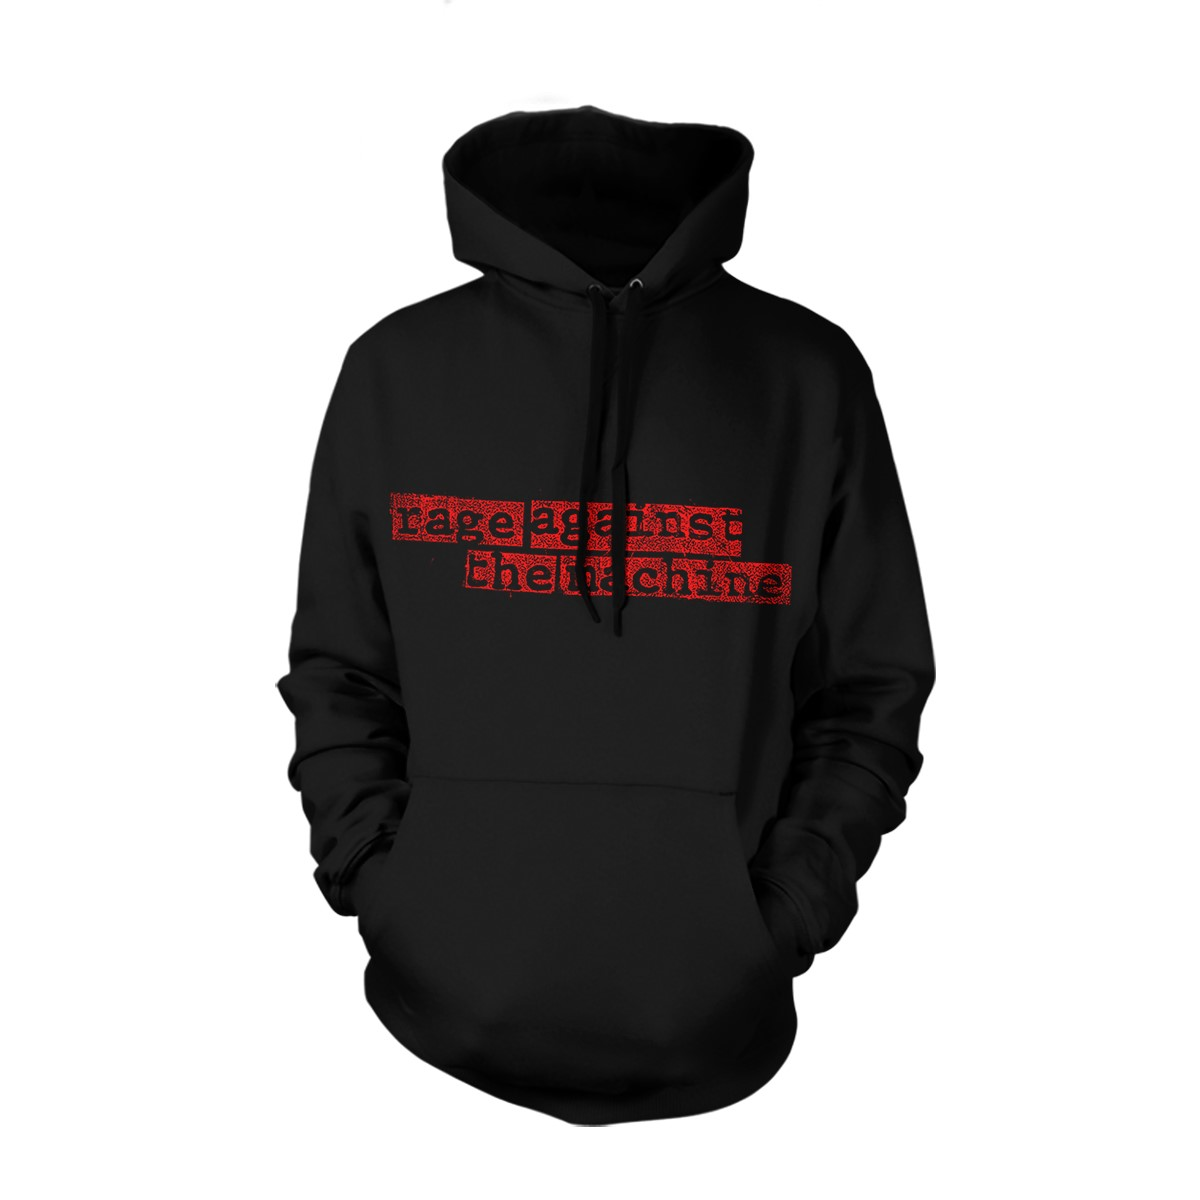 Large Nuns Black Pullover Hood - Rage Against the Machine